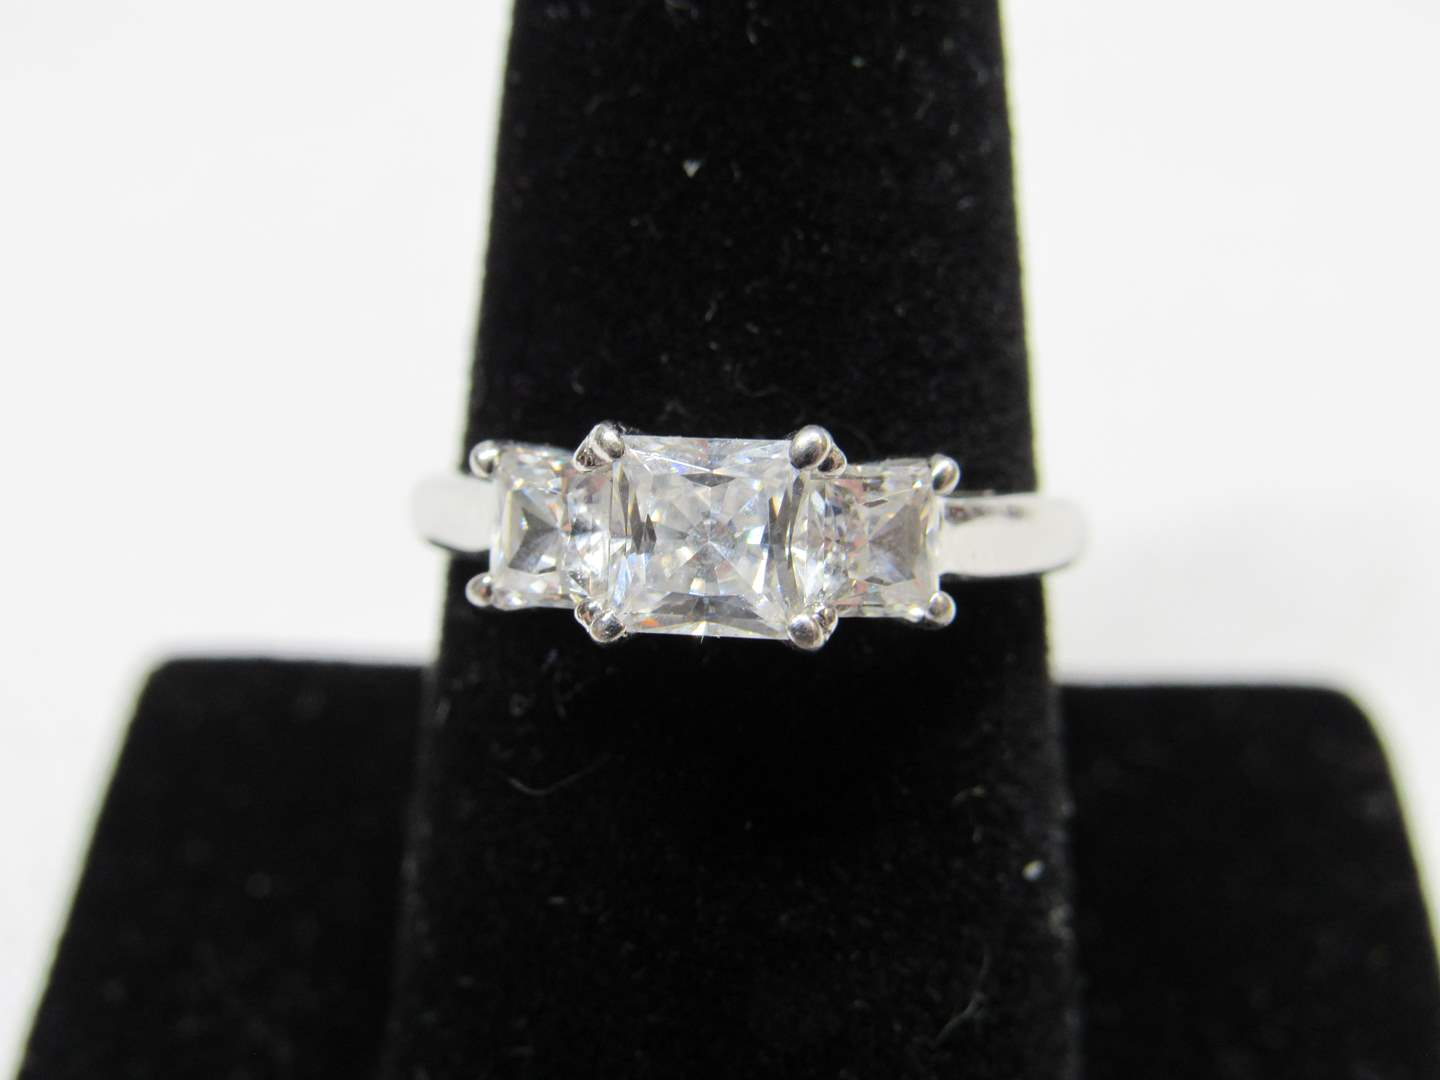 Lot # 224  Large CZ center stone sterling silver ring size 8 (main image)